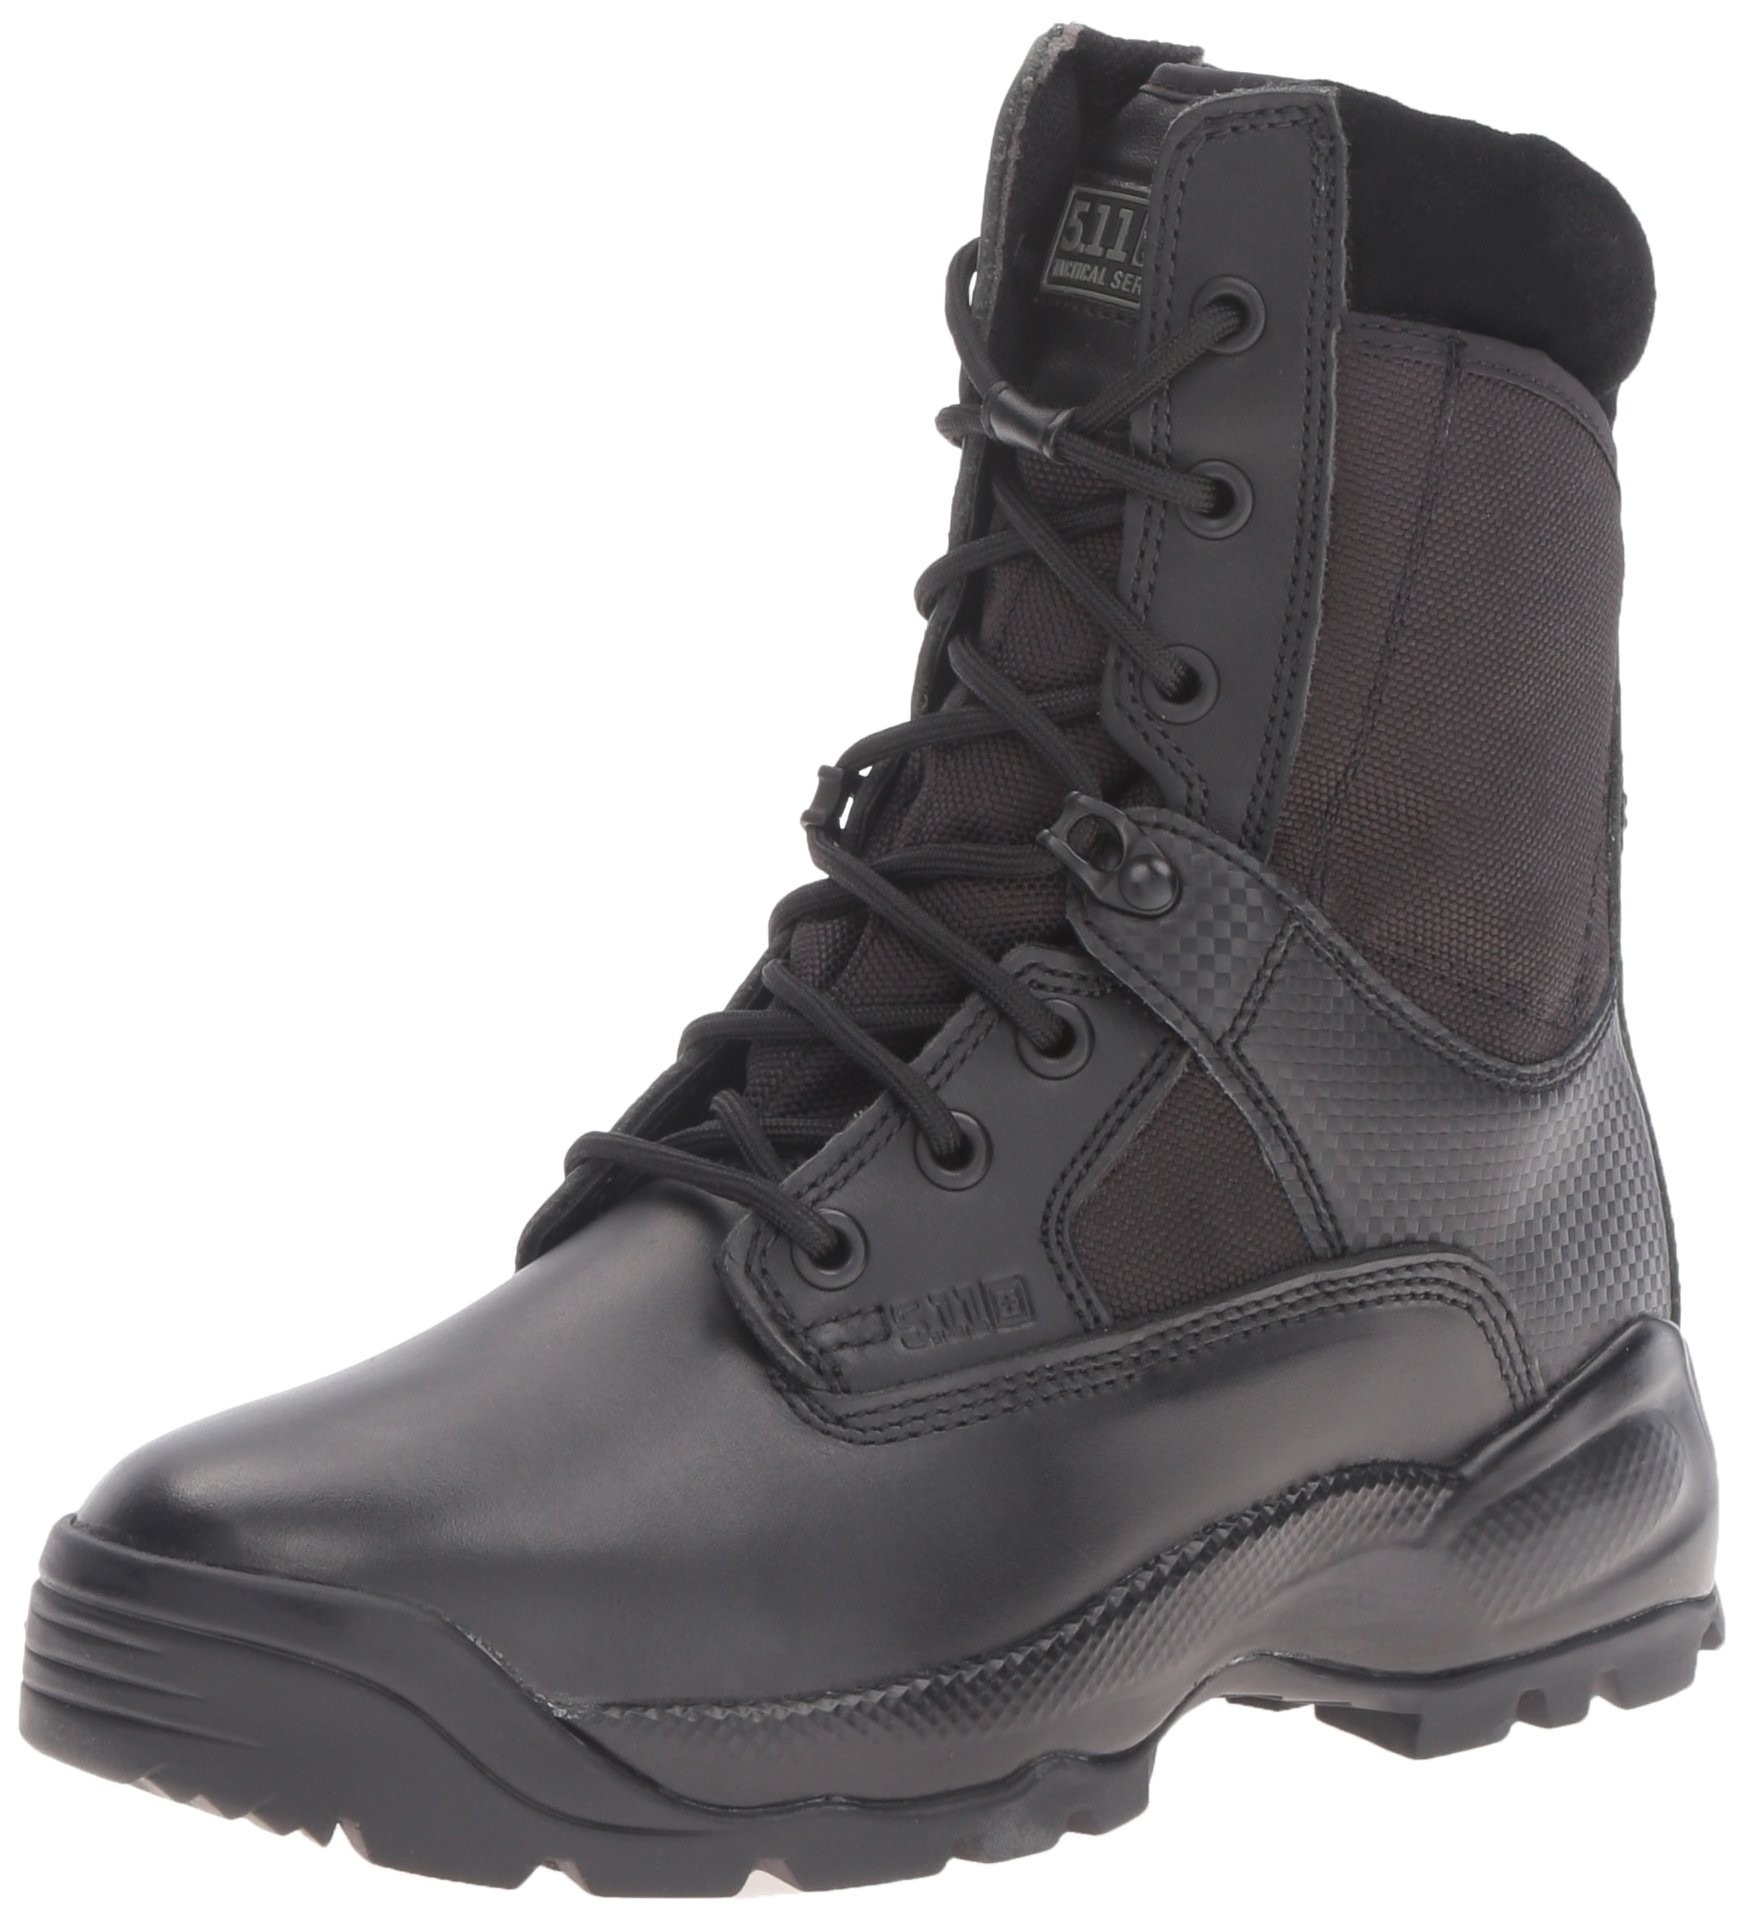 5.11 Women's A.T.A.C. 8'' Side Zip Tactical Boots, Style 12007, Black, 6.5 R